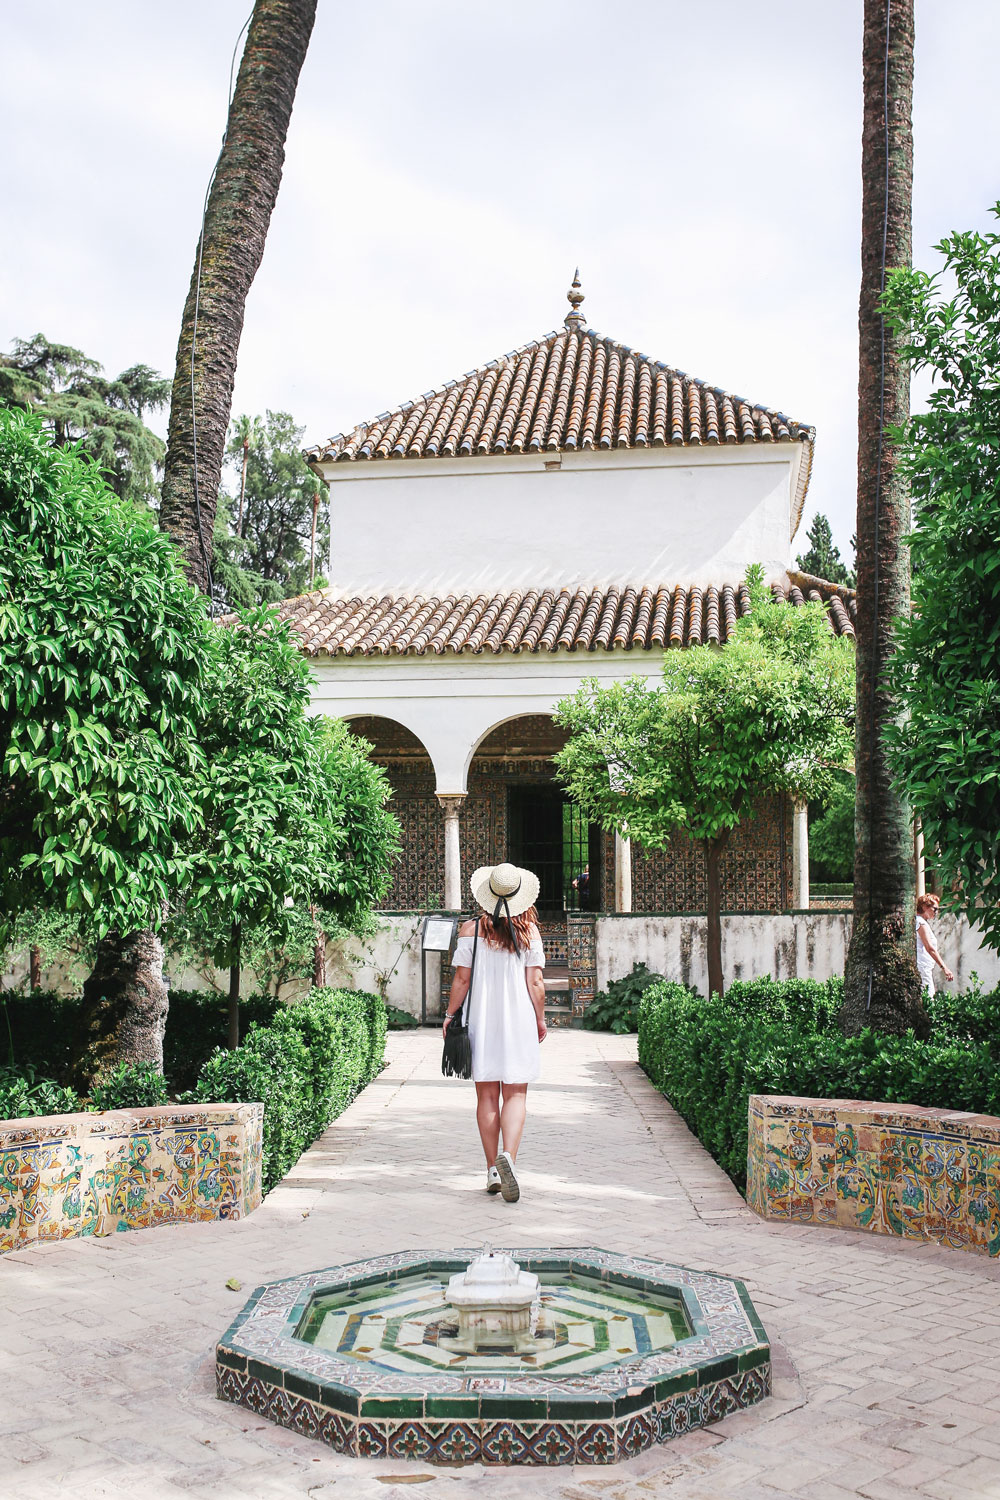 Guide to alcazar seville by To Vogue or Bust